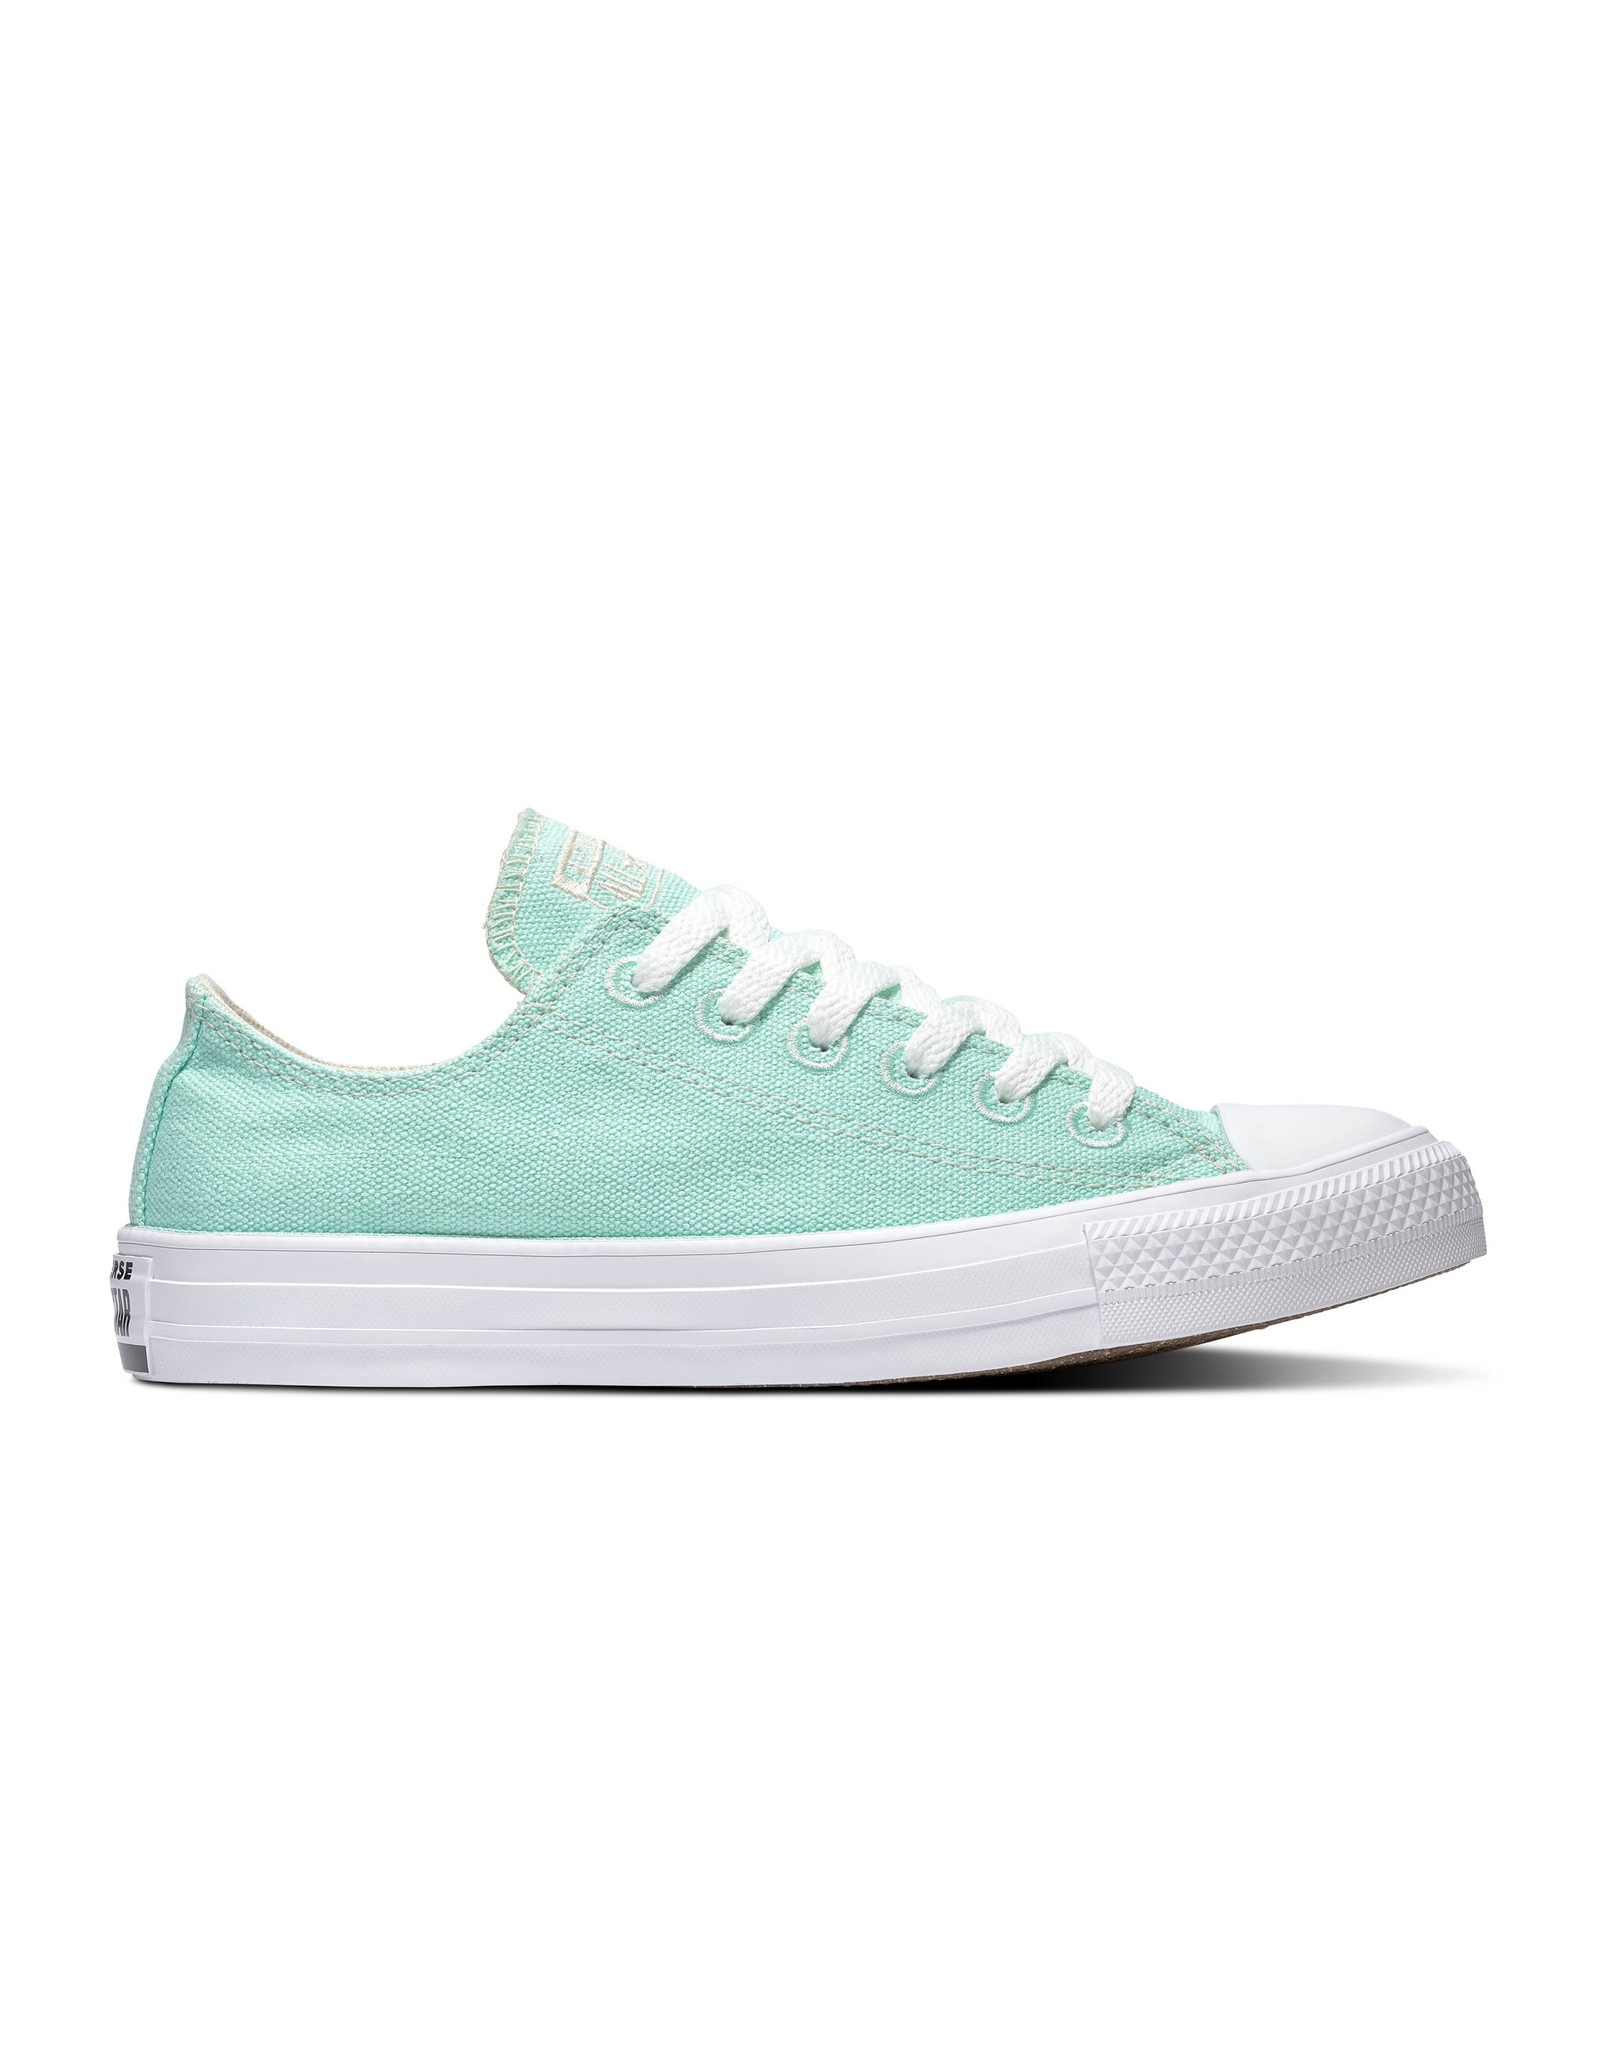 CONVERSE CHUCK TAYLOR ALL STAR  OX OCEAN MINT/NATURAL/WHITE C14OM-166745C